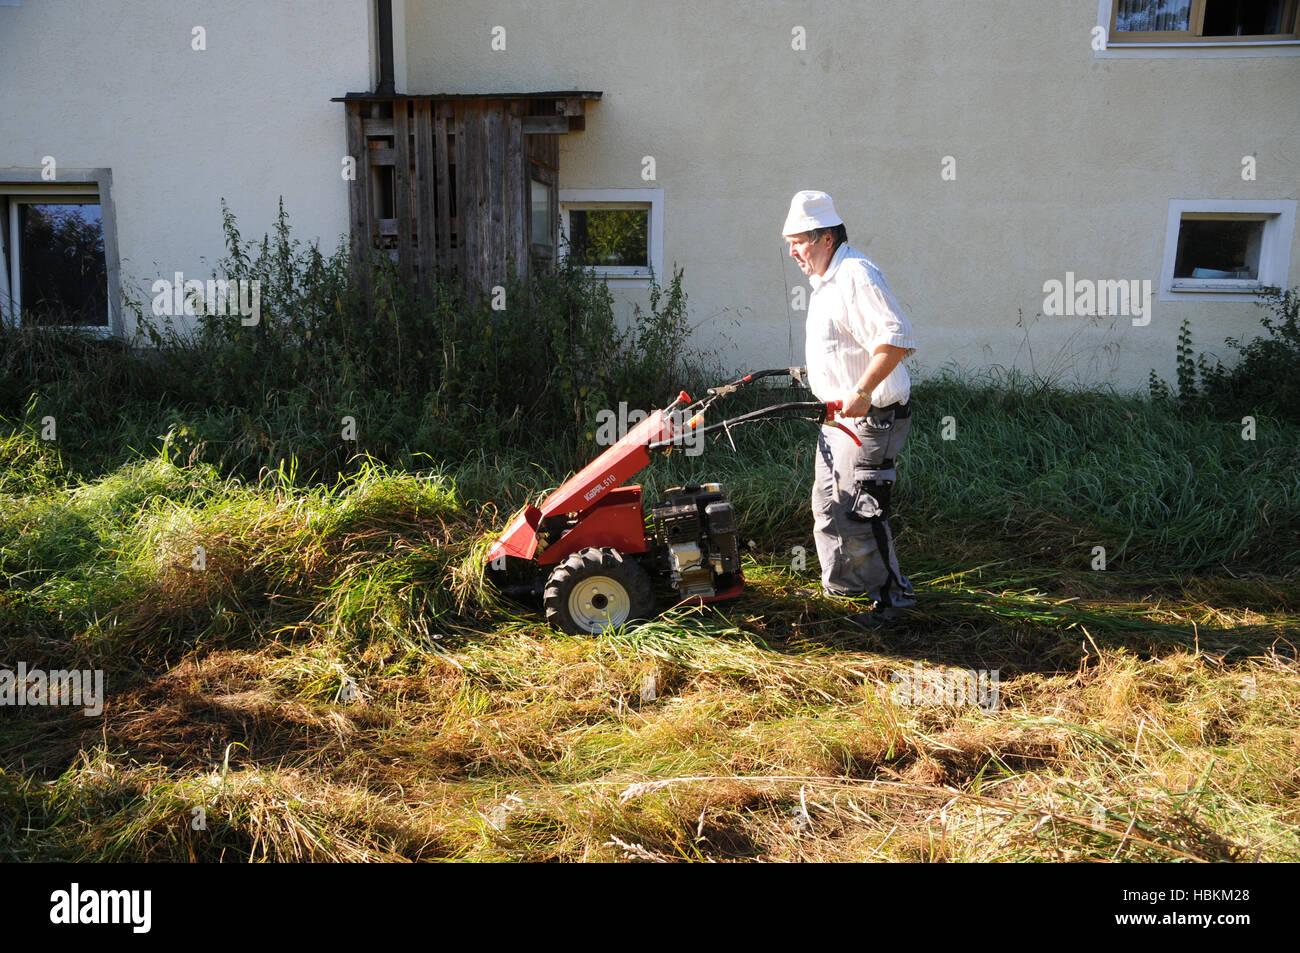 Sickle Bar Mower Stock Photos & Sickle Bar Mower Stock Images - Alamy